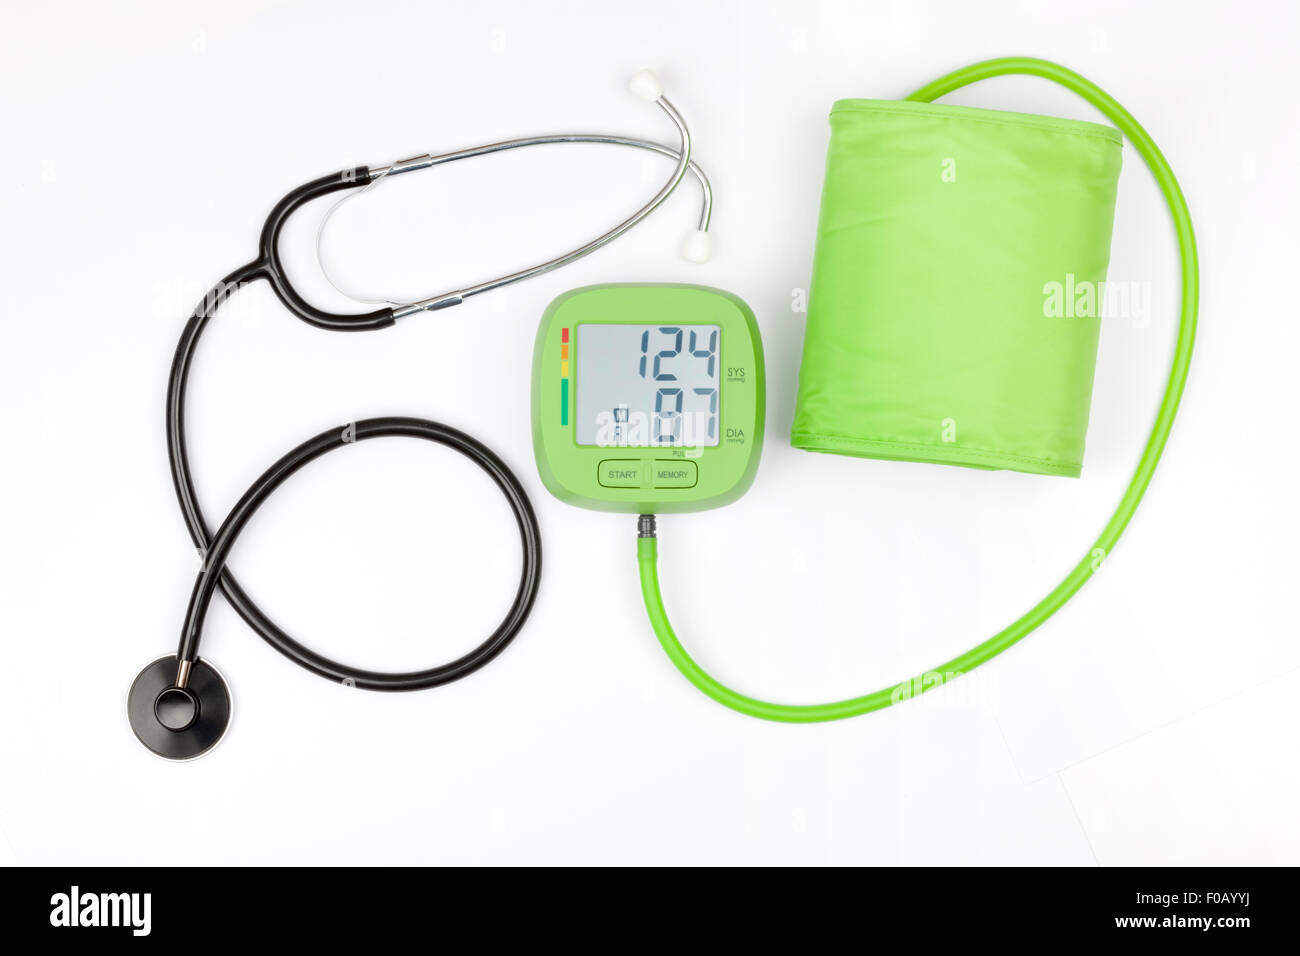 Blood pressure meter and stethoscope isolated on a white background - Stock Image